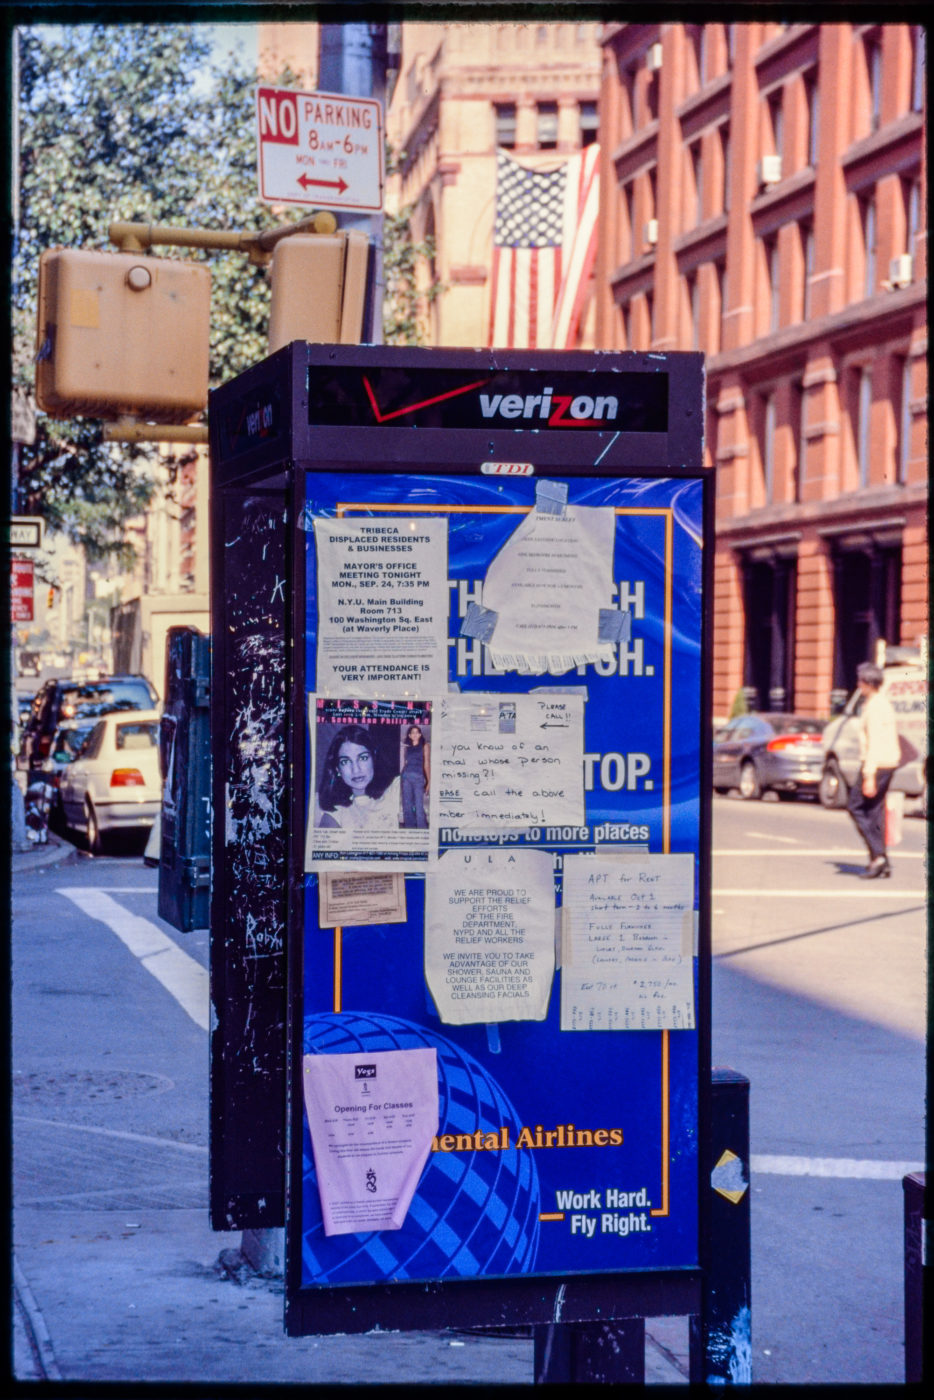 Flyer Ads for Apartments, Missing Persons, and Yoga on a Phone Box.jpg